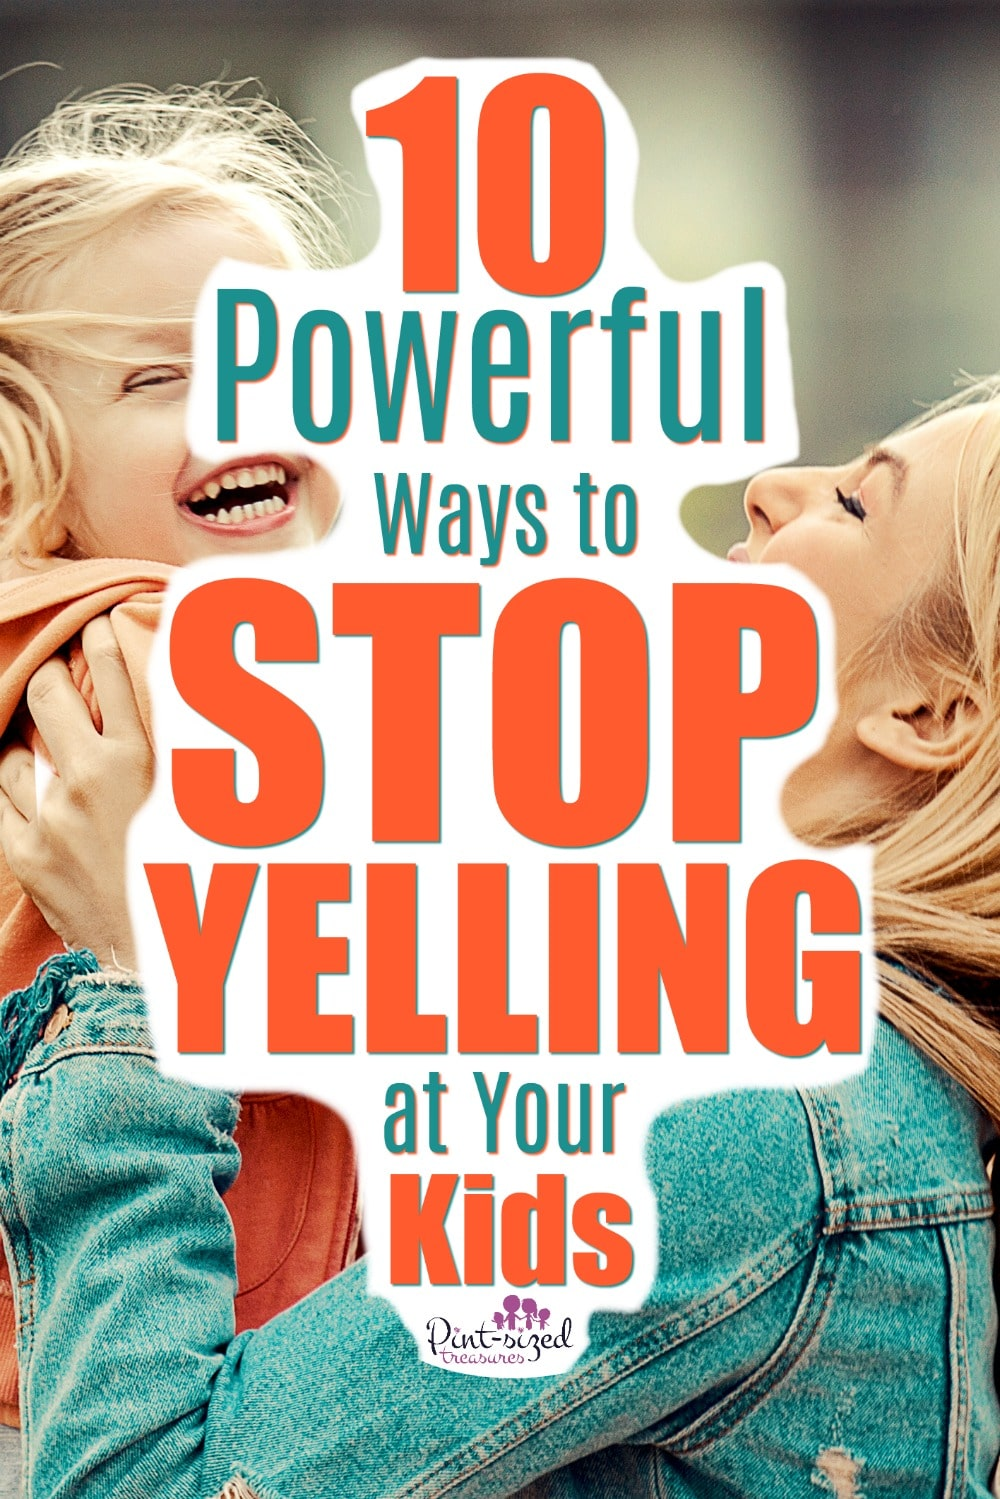 Powerful tips to help parents stop yelling at kids